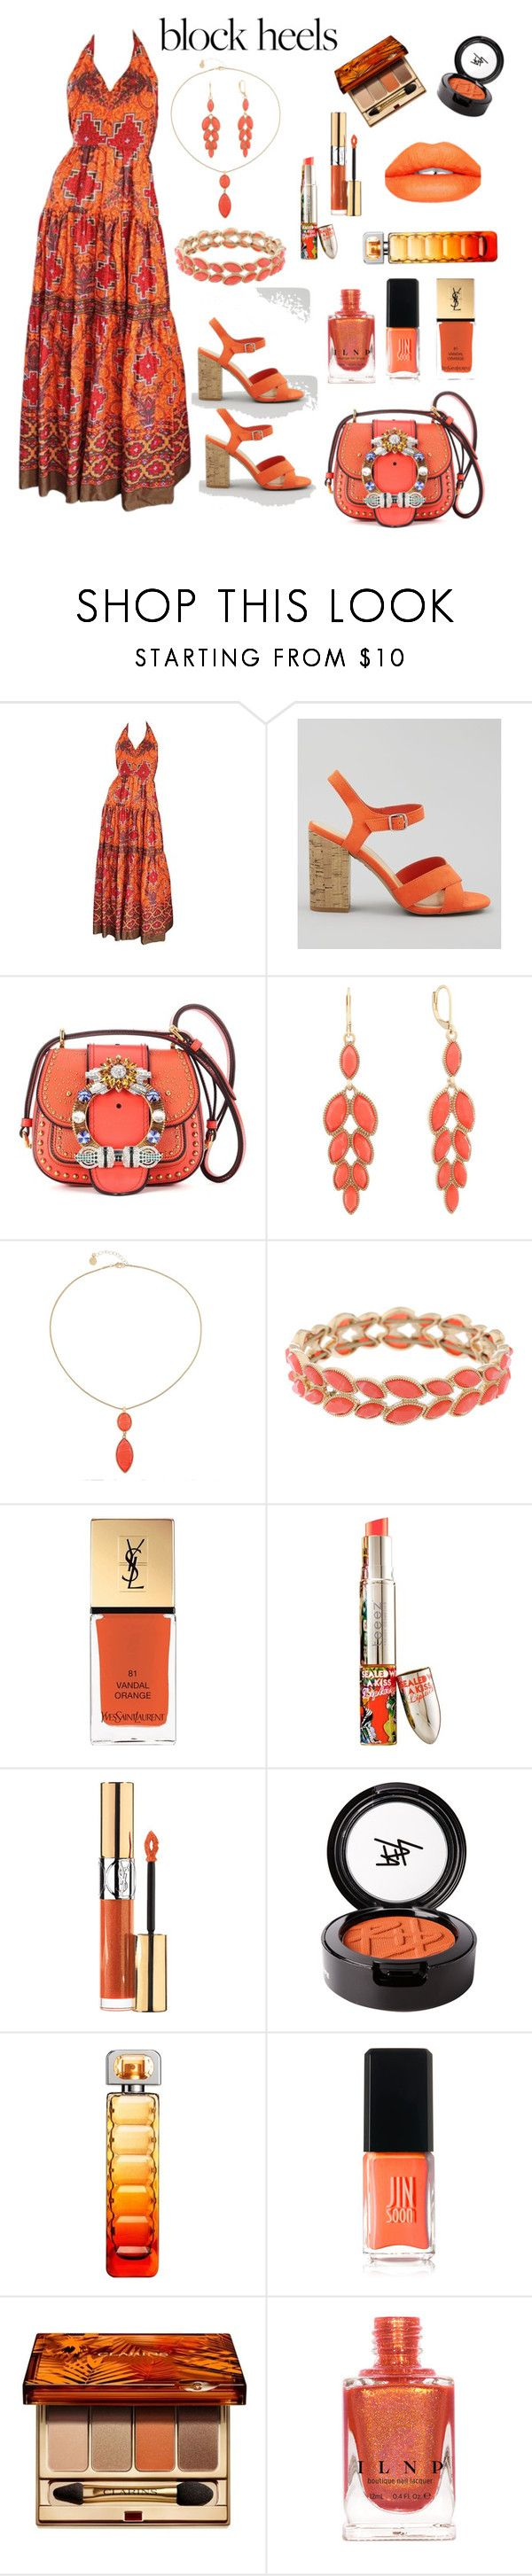 Usher roller shoes video - Exotic Orange By Siriusfunbysheila1954 On Polyvore Featuring Frank Usher New Look Miu Miu